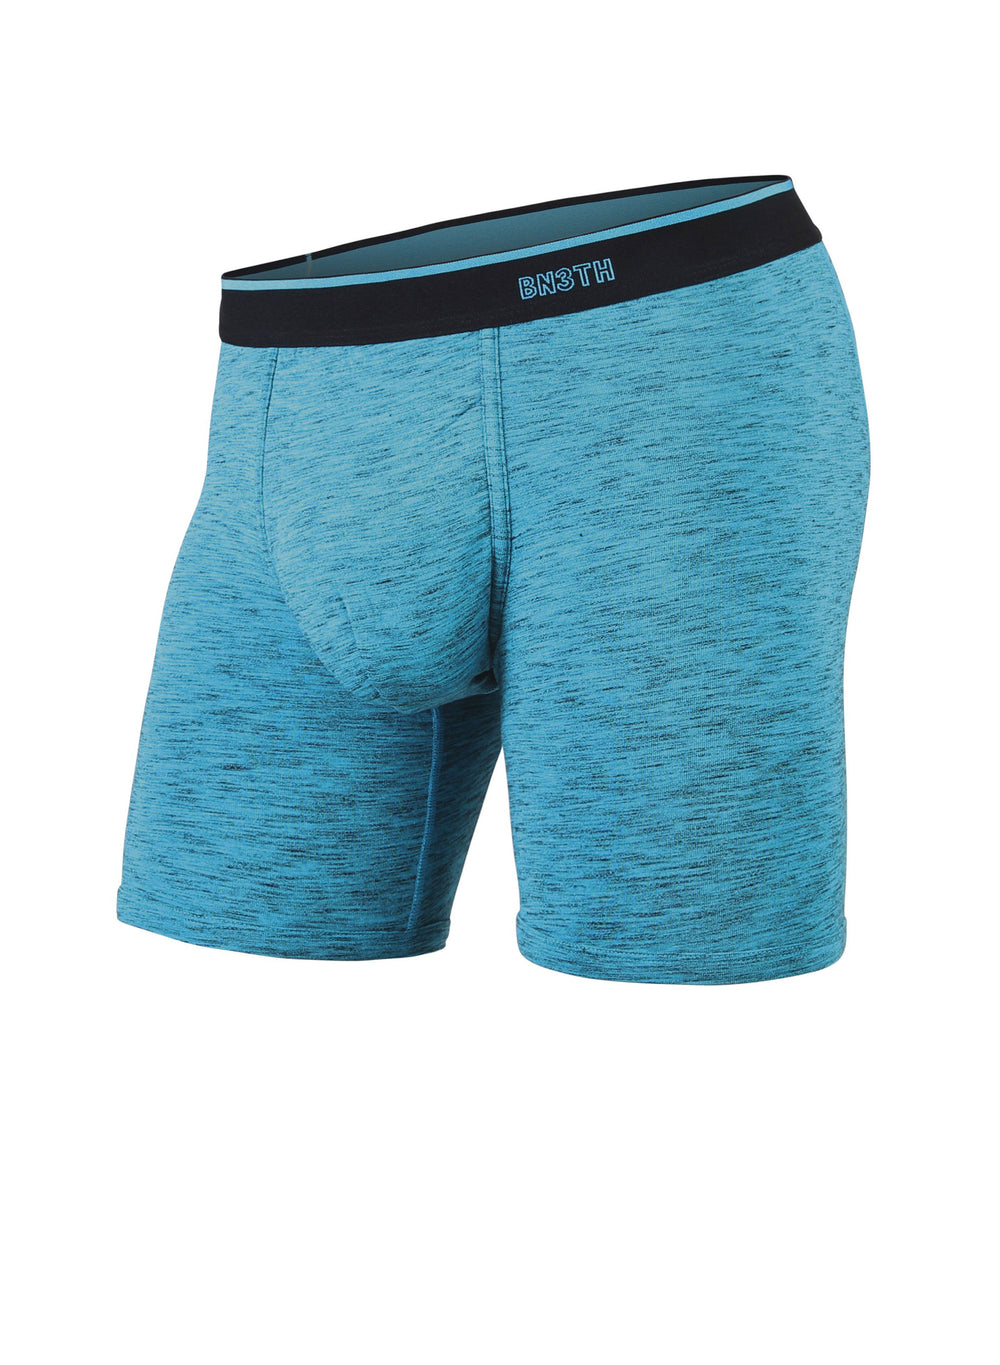 BN3TH Classic Boxer Brief